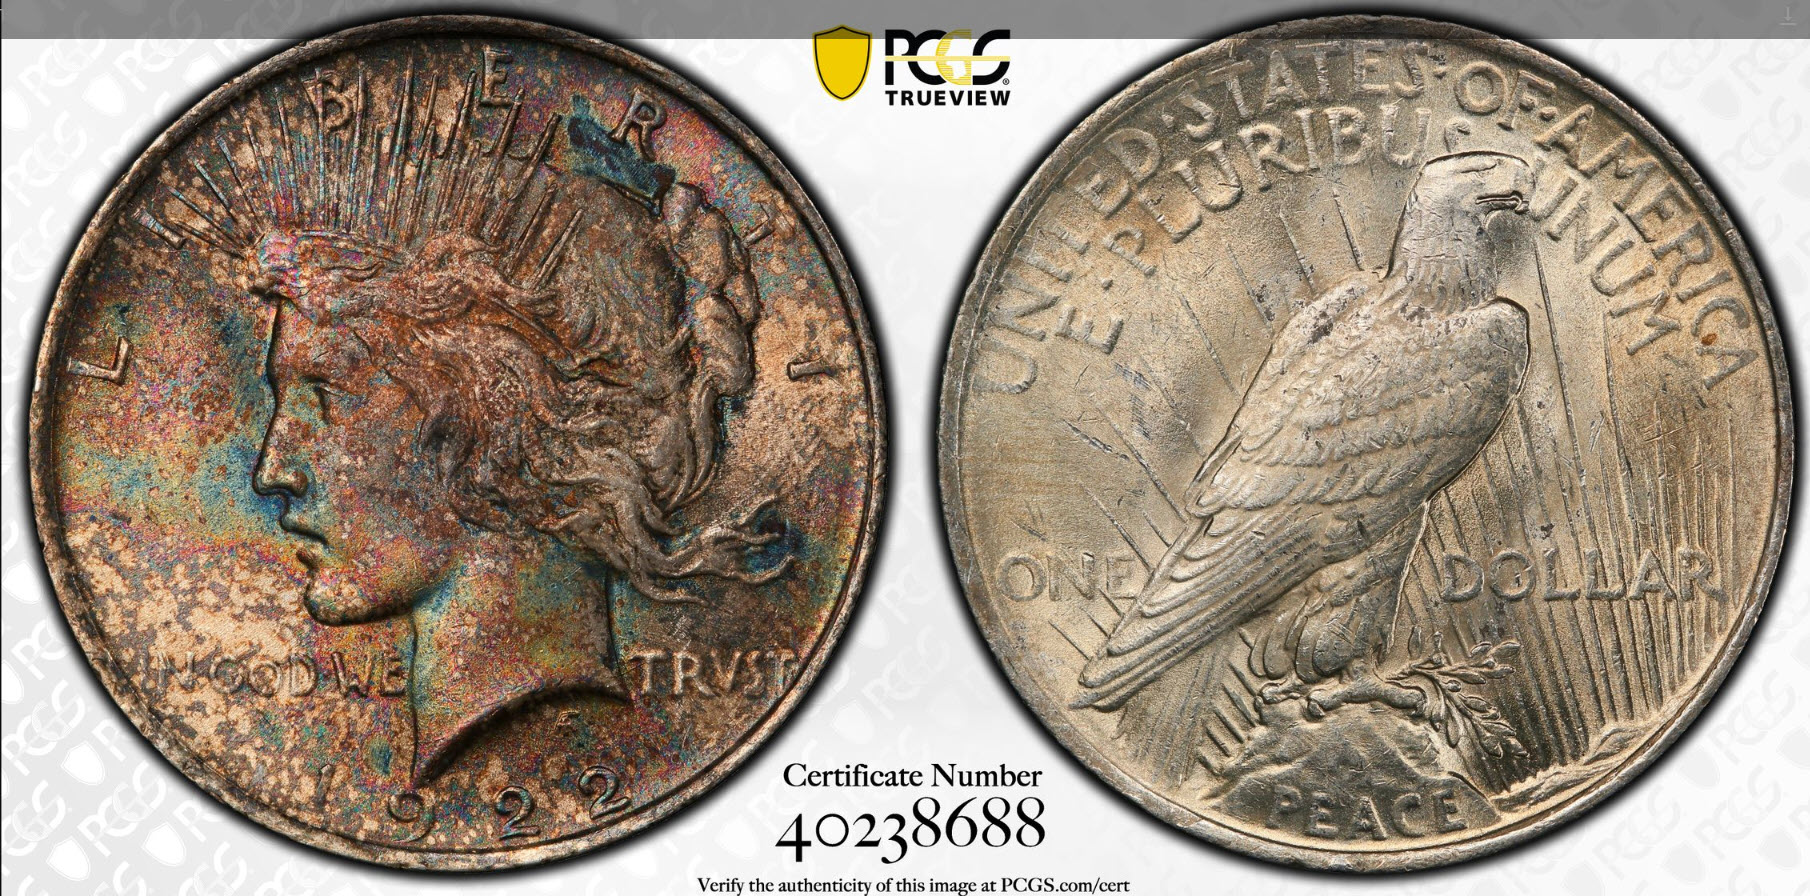 1922 Peace Dollar PCGS with Trueview